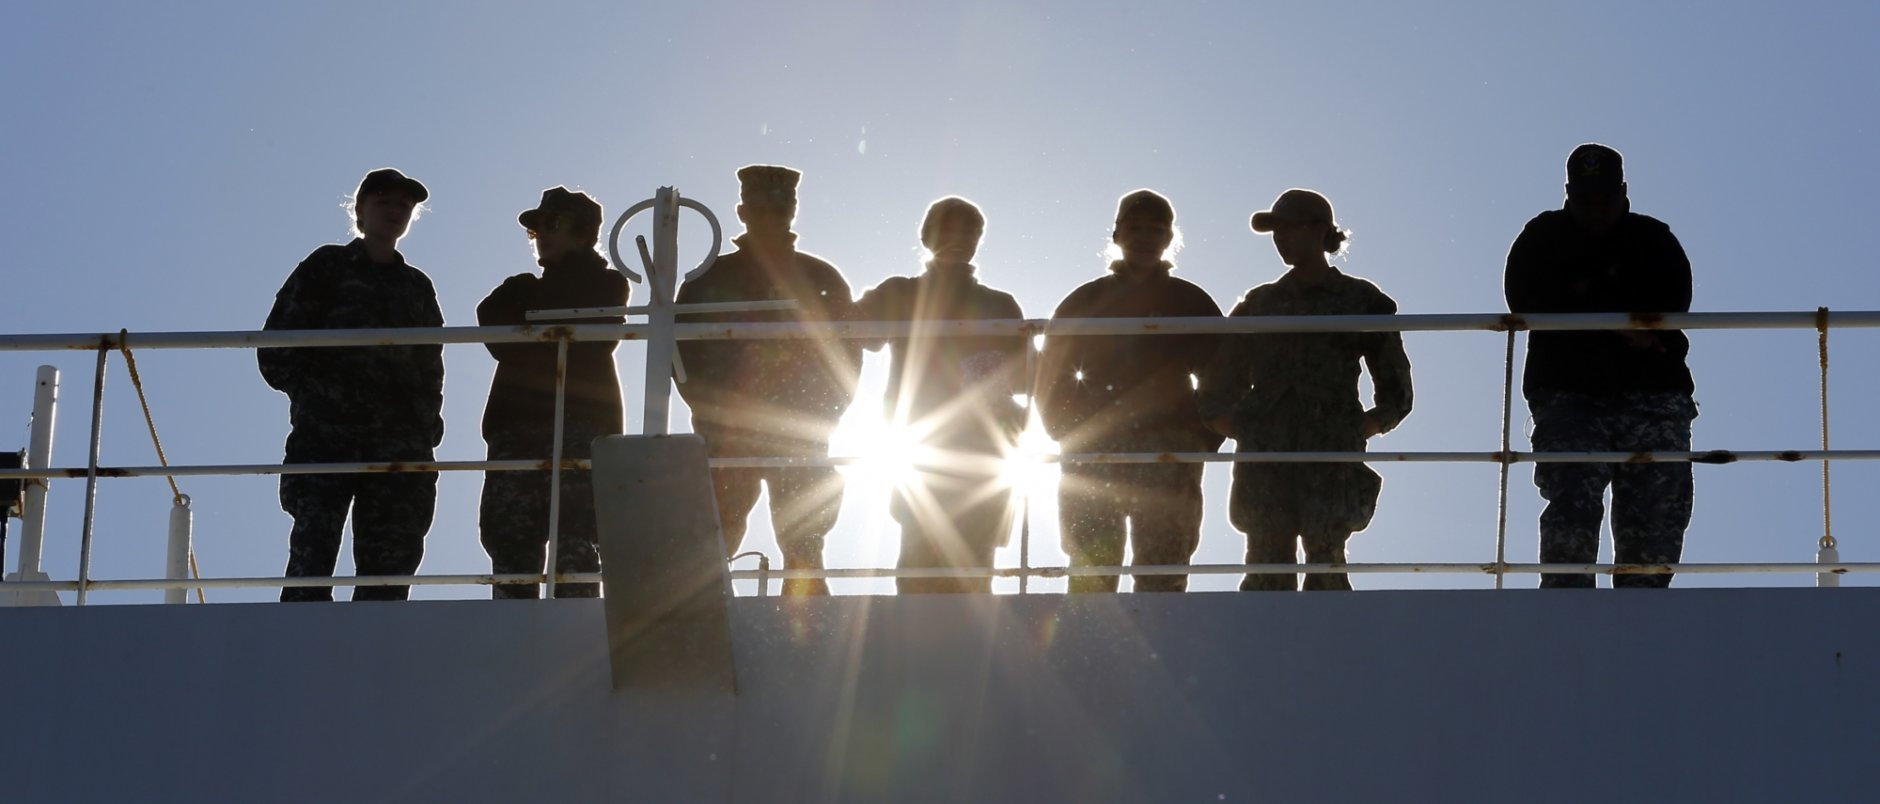 Navy personnel line the rails as the US Navy Hospital Ship USNS Comfort arrives pier side at Naval Station Norfolk, Tuesday, Dec. 18, 2018, in Norfolk , Va., after an 11-week medical support mission to South and Central America. The ship treated over 26,000 patients and conducted approximately 600 surgeries. (AP Photo/Steve Helber)